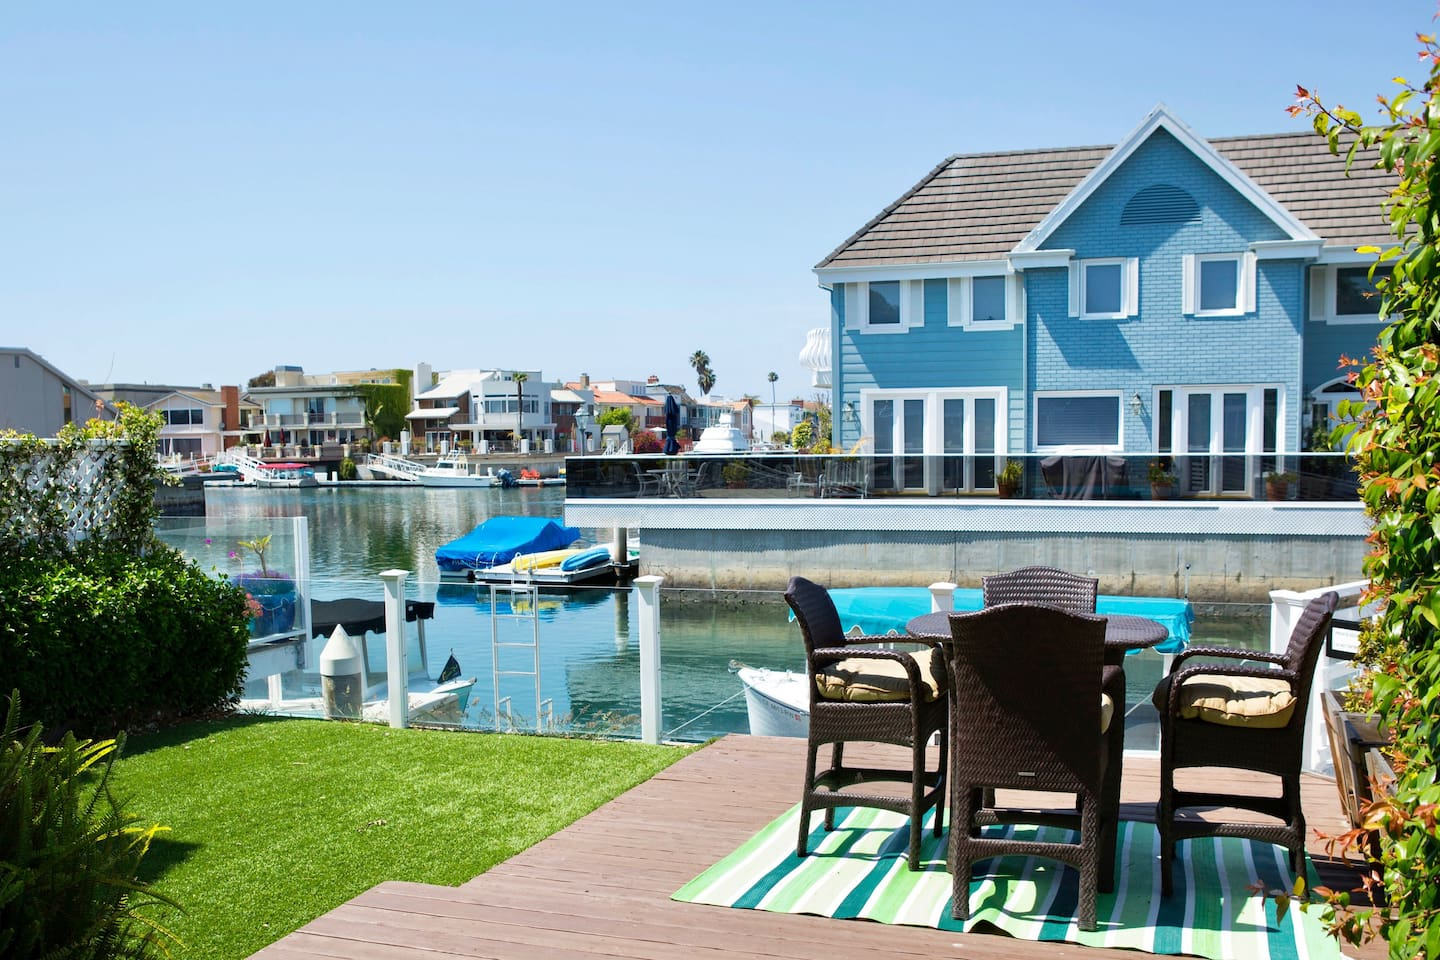 Outdoor dining with a view of the harbor.